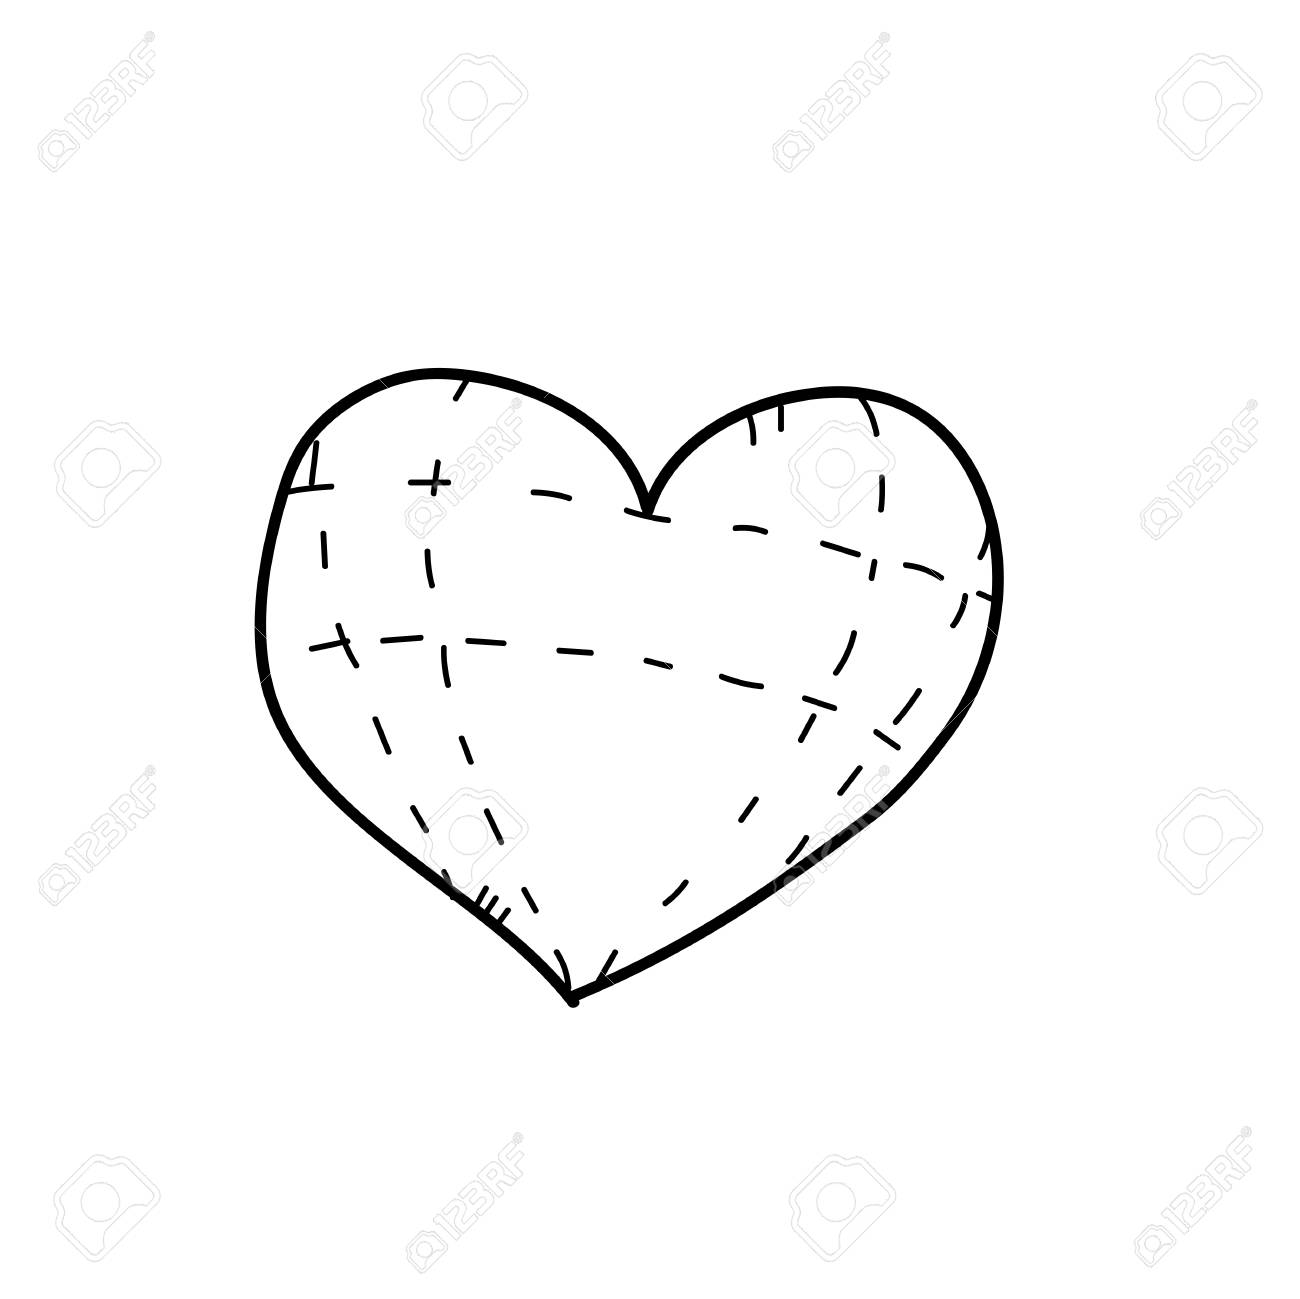 1300x1299 Freehand Drawing Illustration Of Heart Stock Photo, Picture